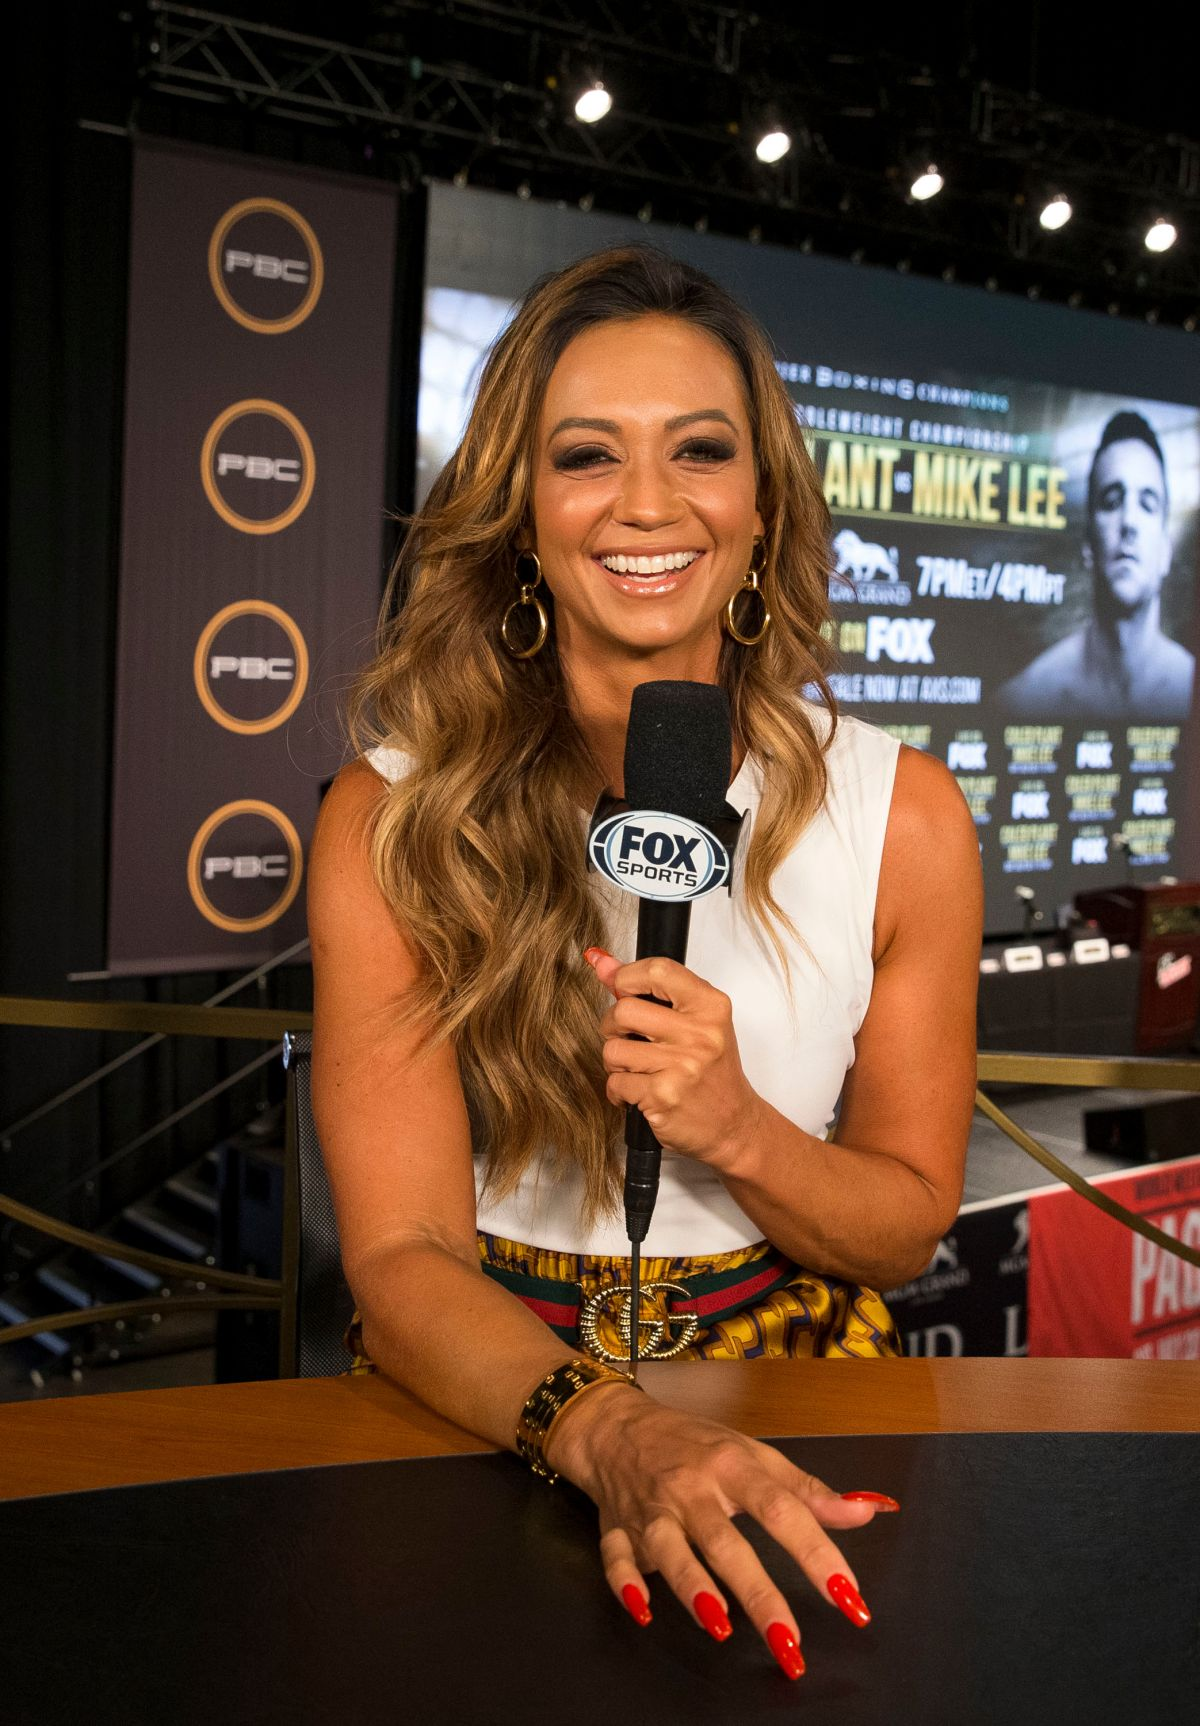 A league of their own. KATE ABDO at PBC on Fox Fight Night Final Press Conference ...